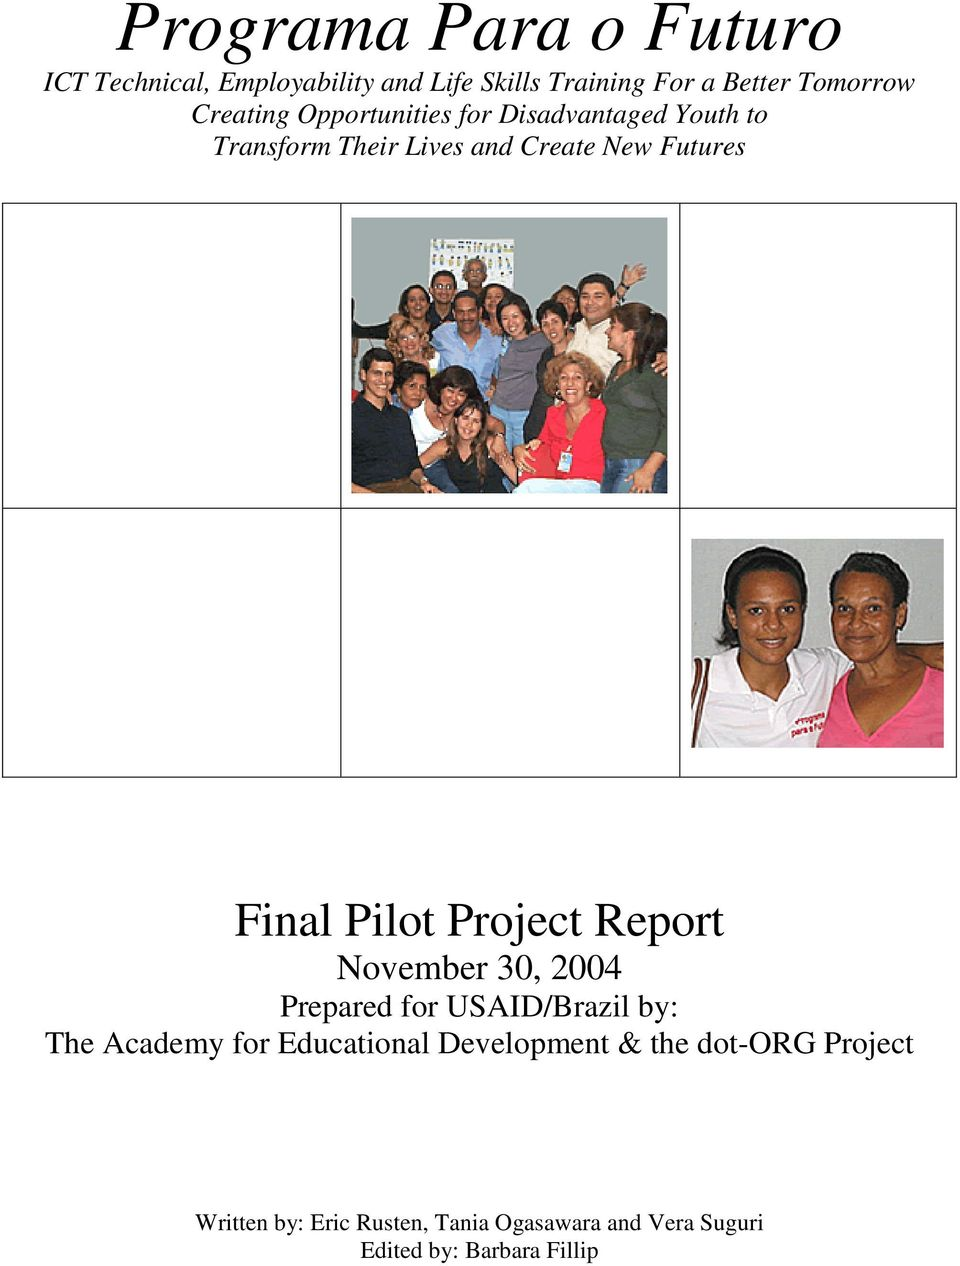 Pilot Project Report November 30, 2004 Prepared for USAID/Brazil by: The Academy for Educational